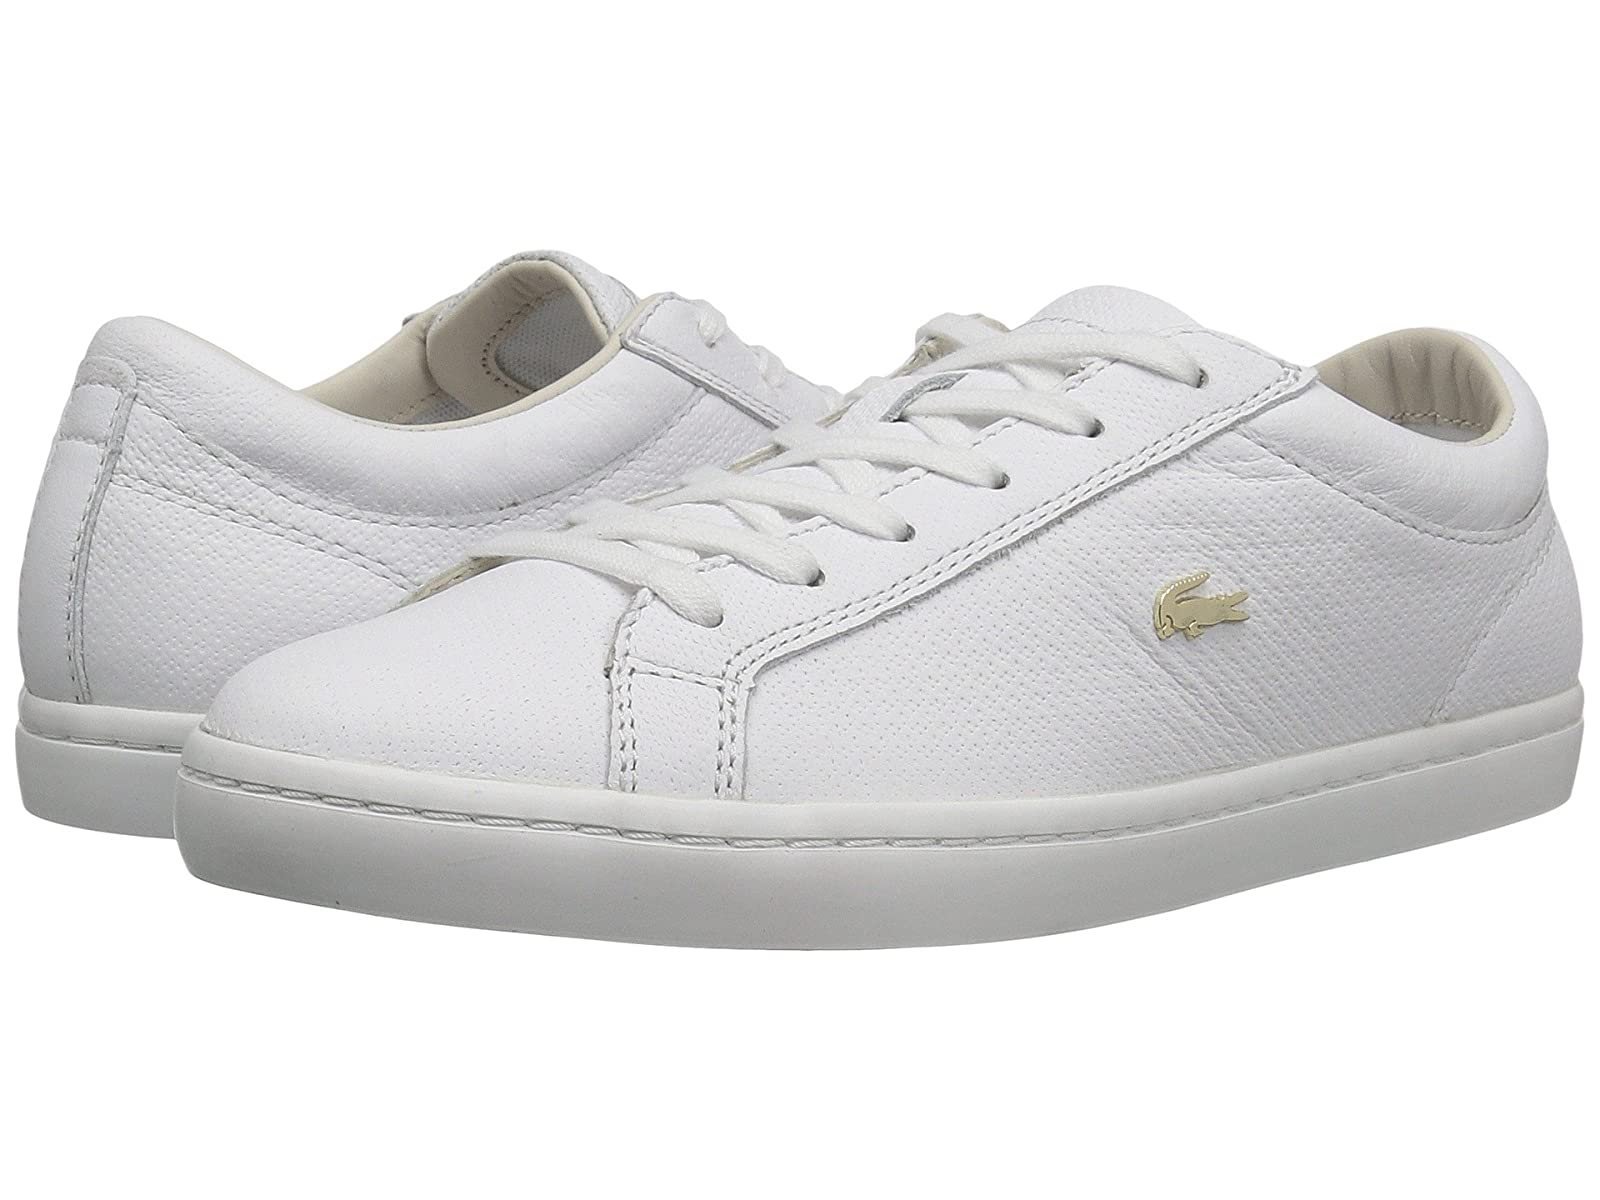 Lacoste Straightset 316 3Cheap and distinctive eye-catching shoes